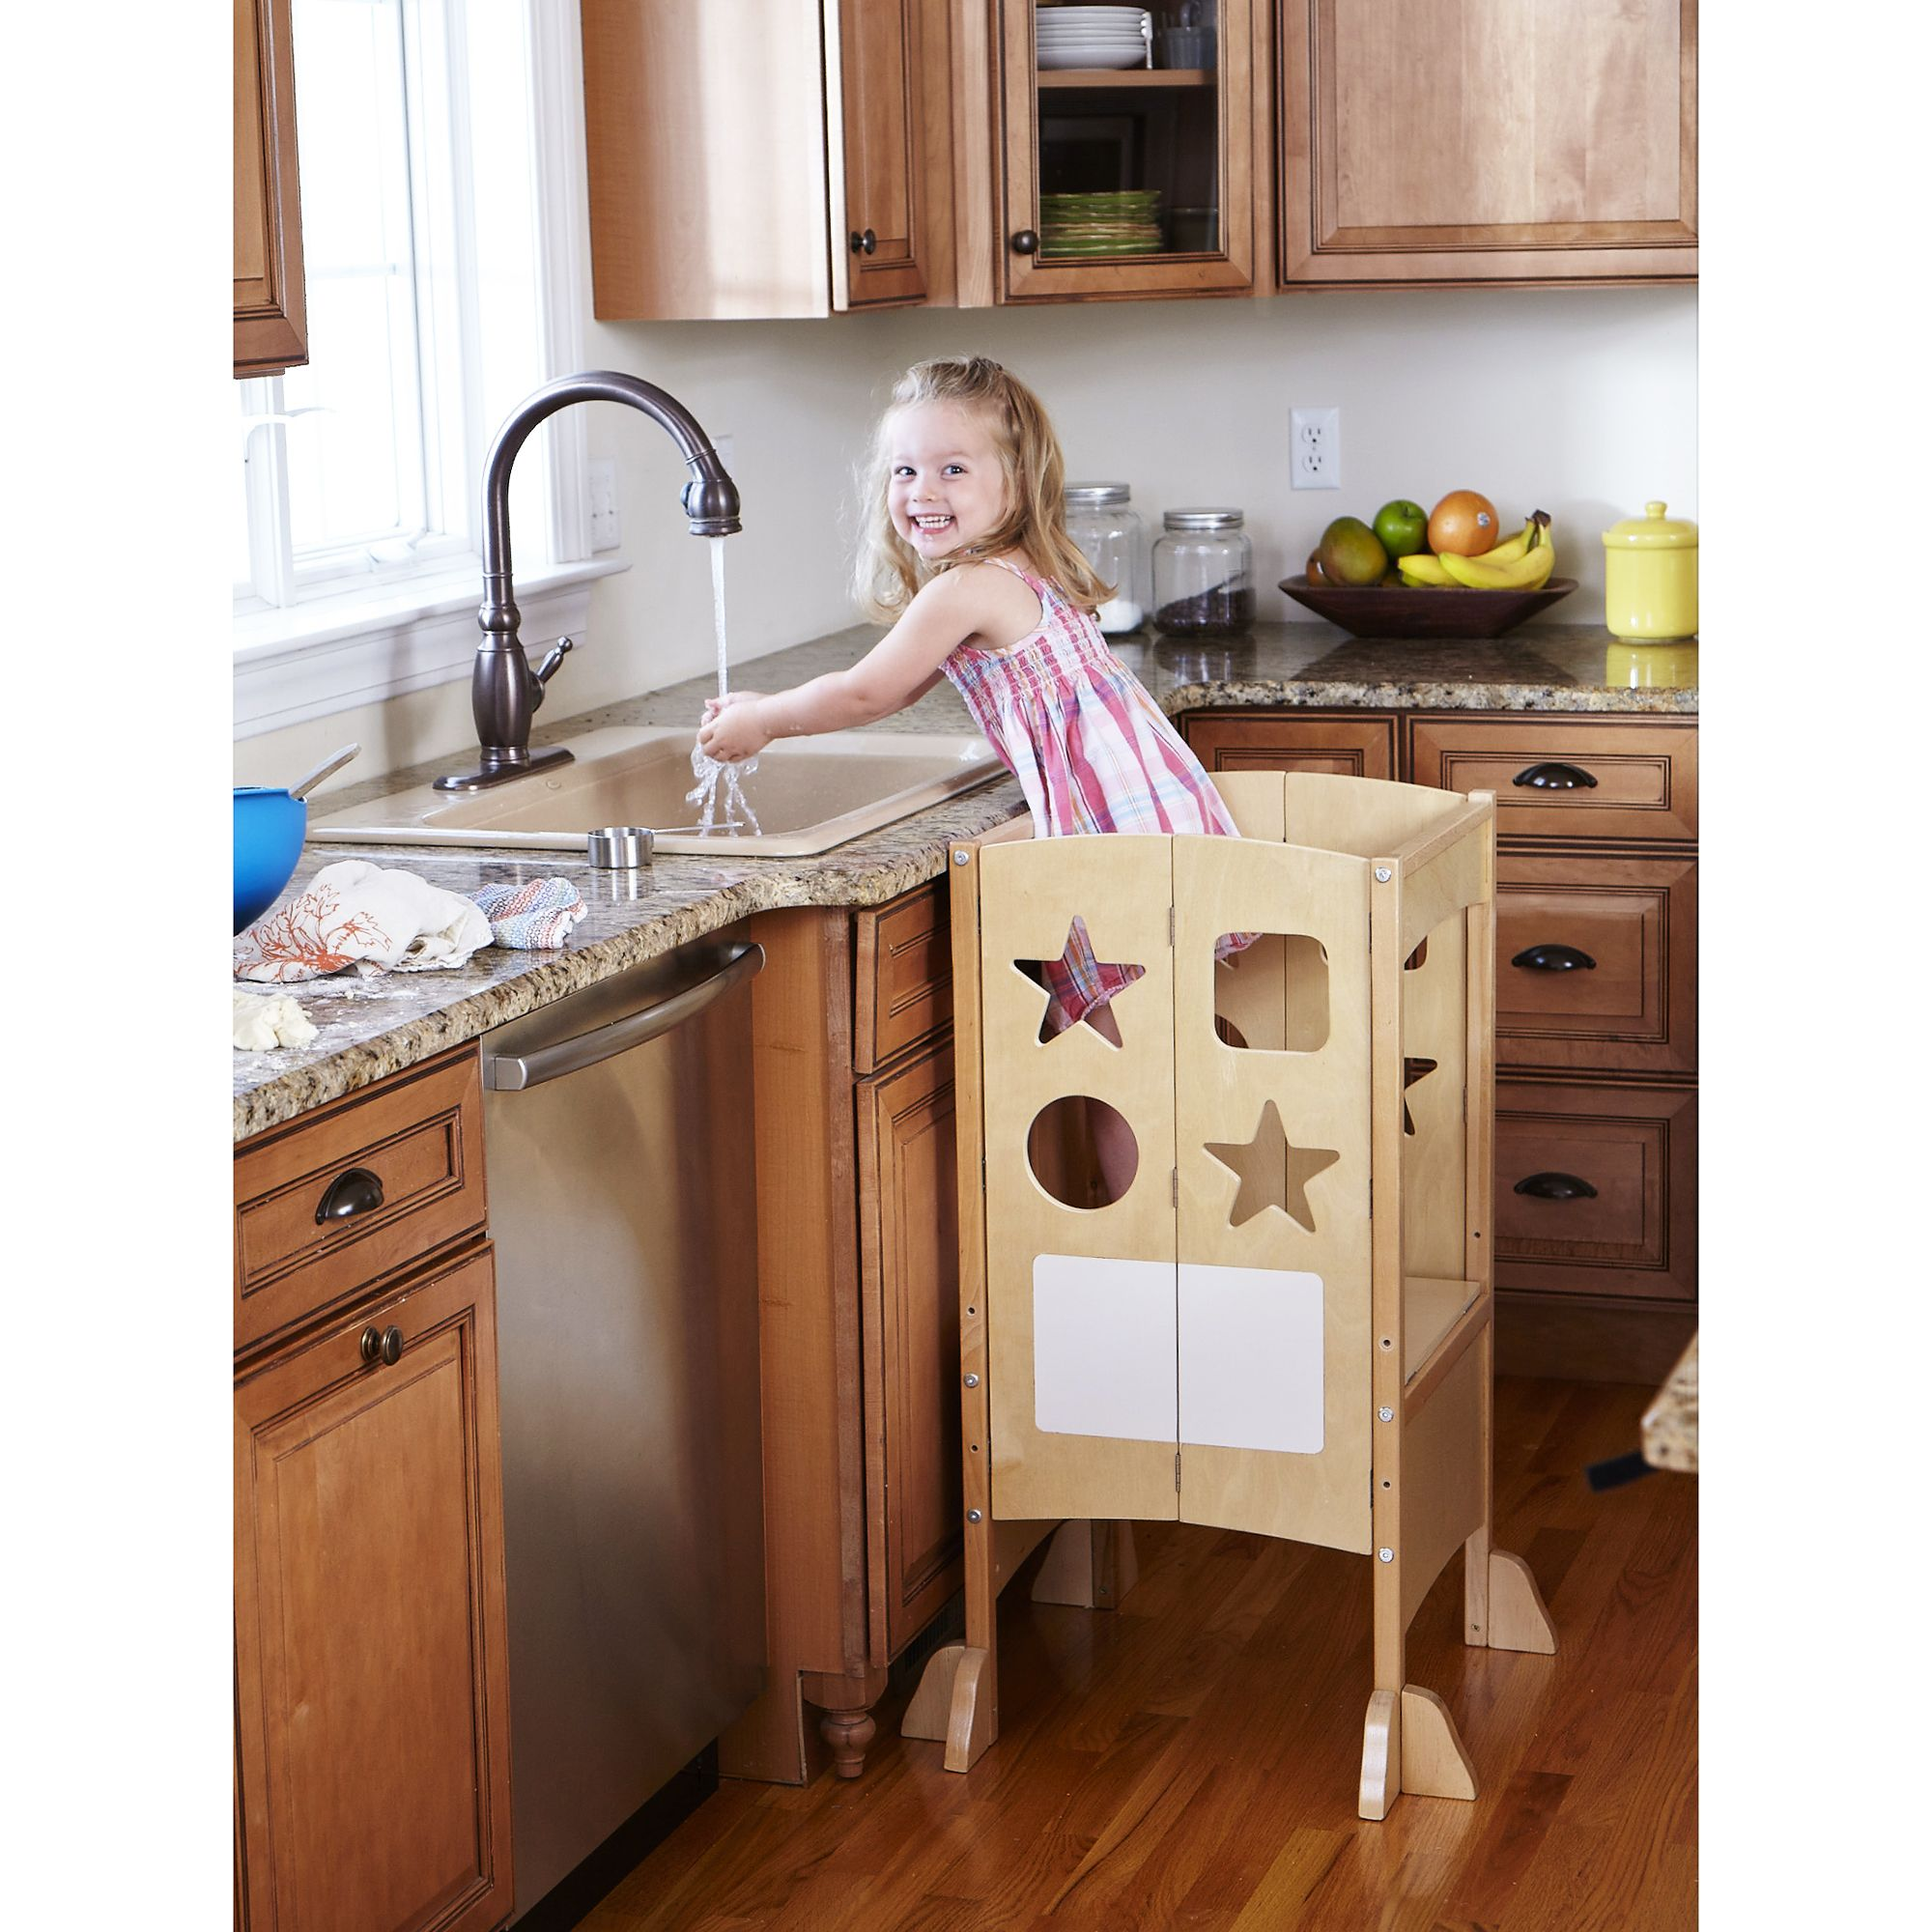 Guidecraft Kitchen Helper Guidecraft Kitchen helper